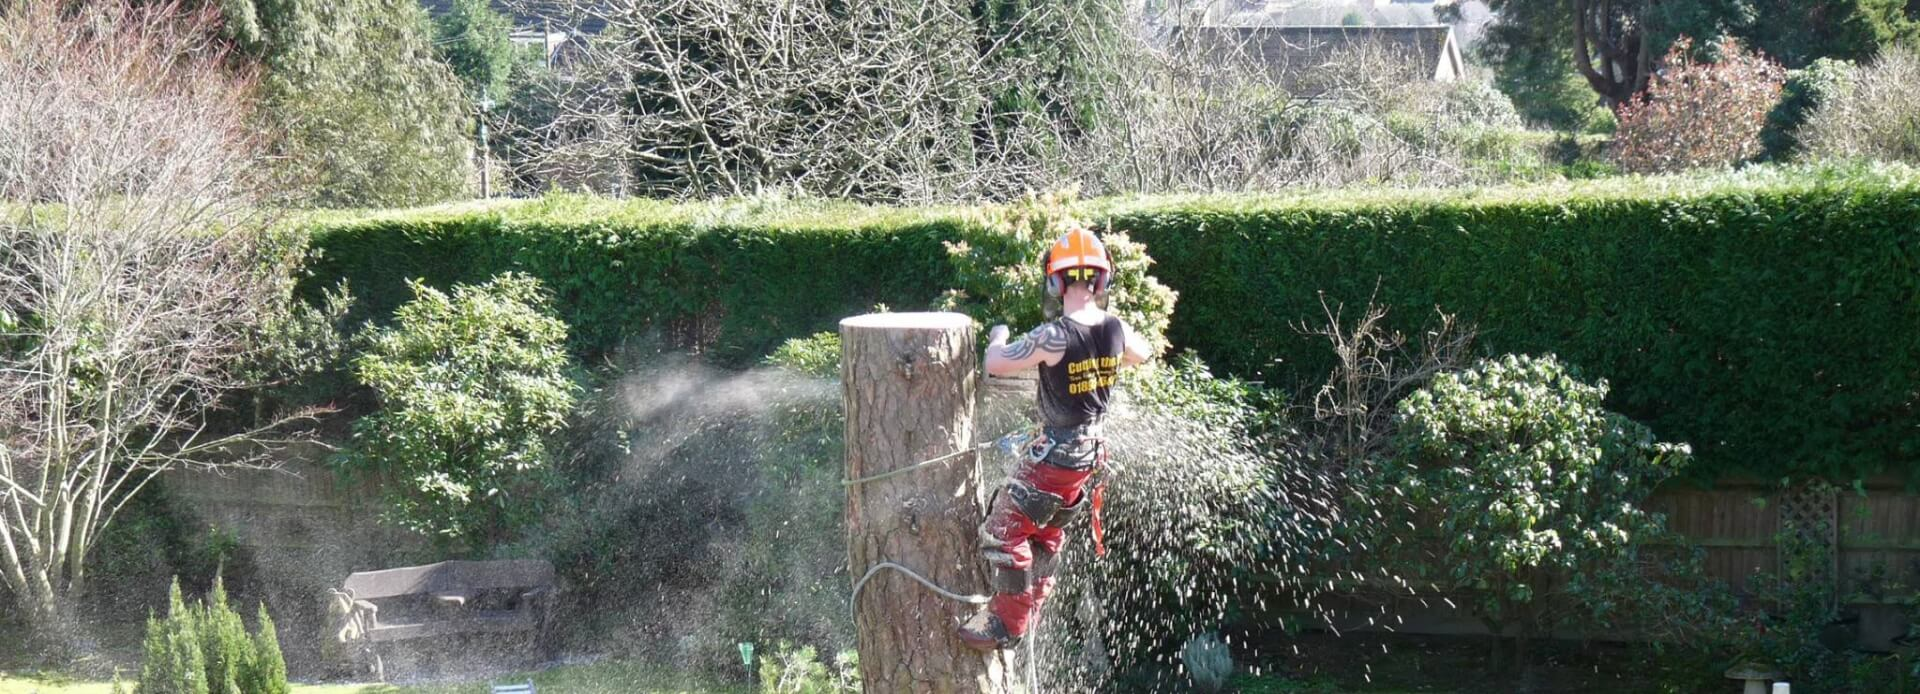 Tree Surgeons in Tunbridge Wells